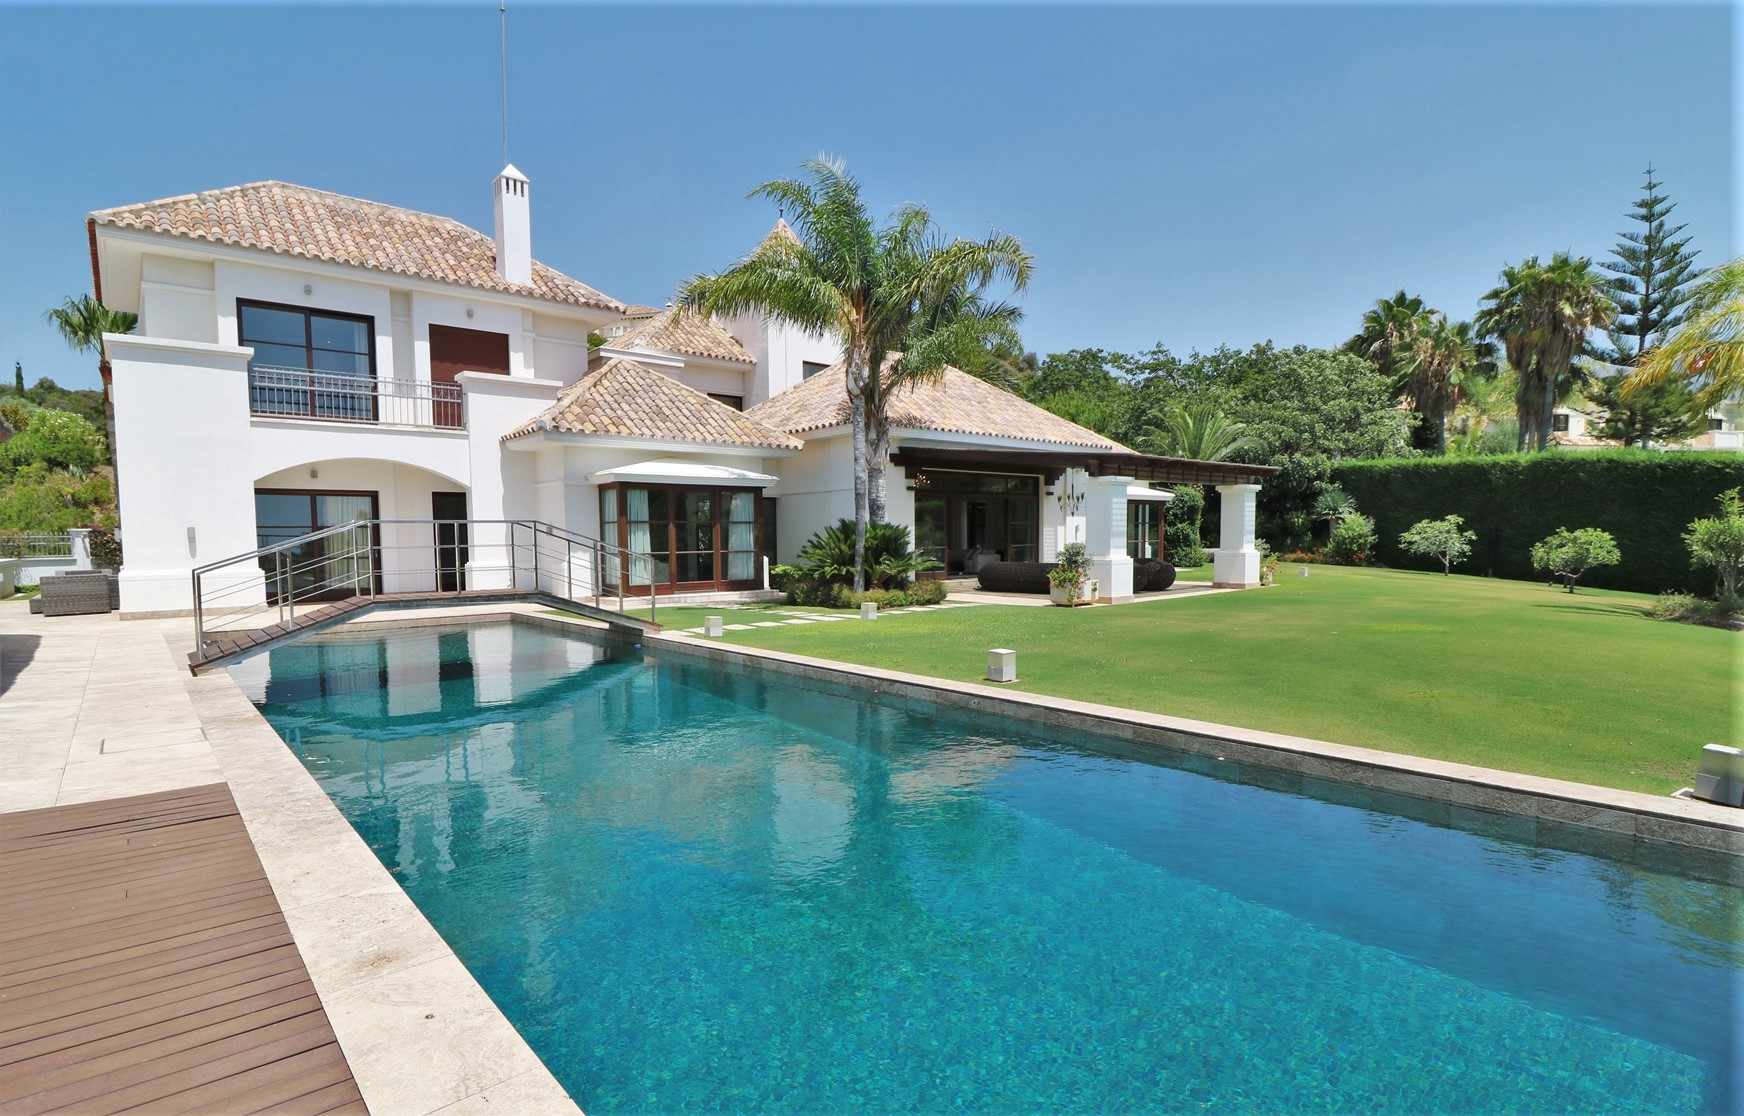 LUXURY VILLA IN BENAHAVIS